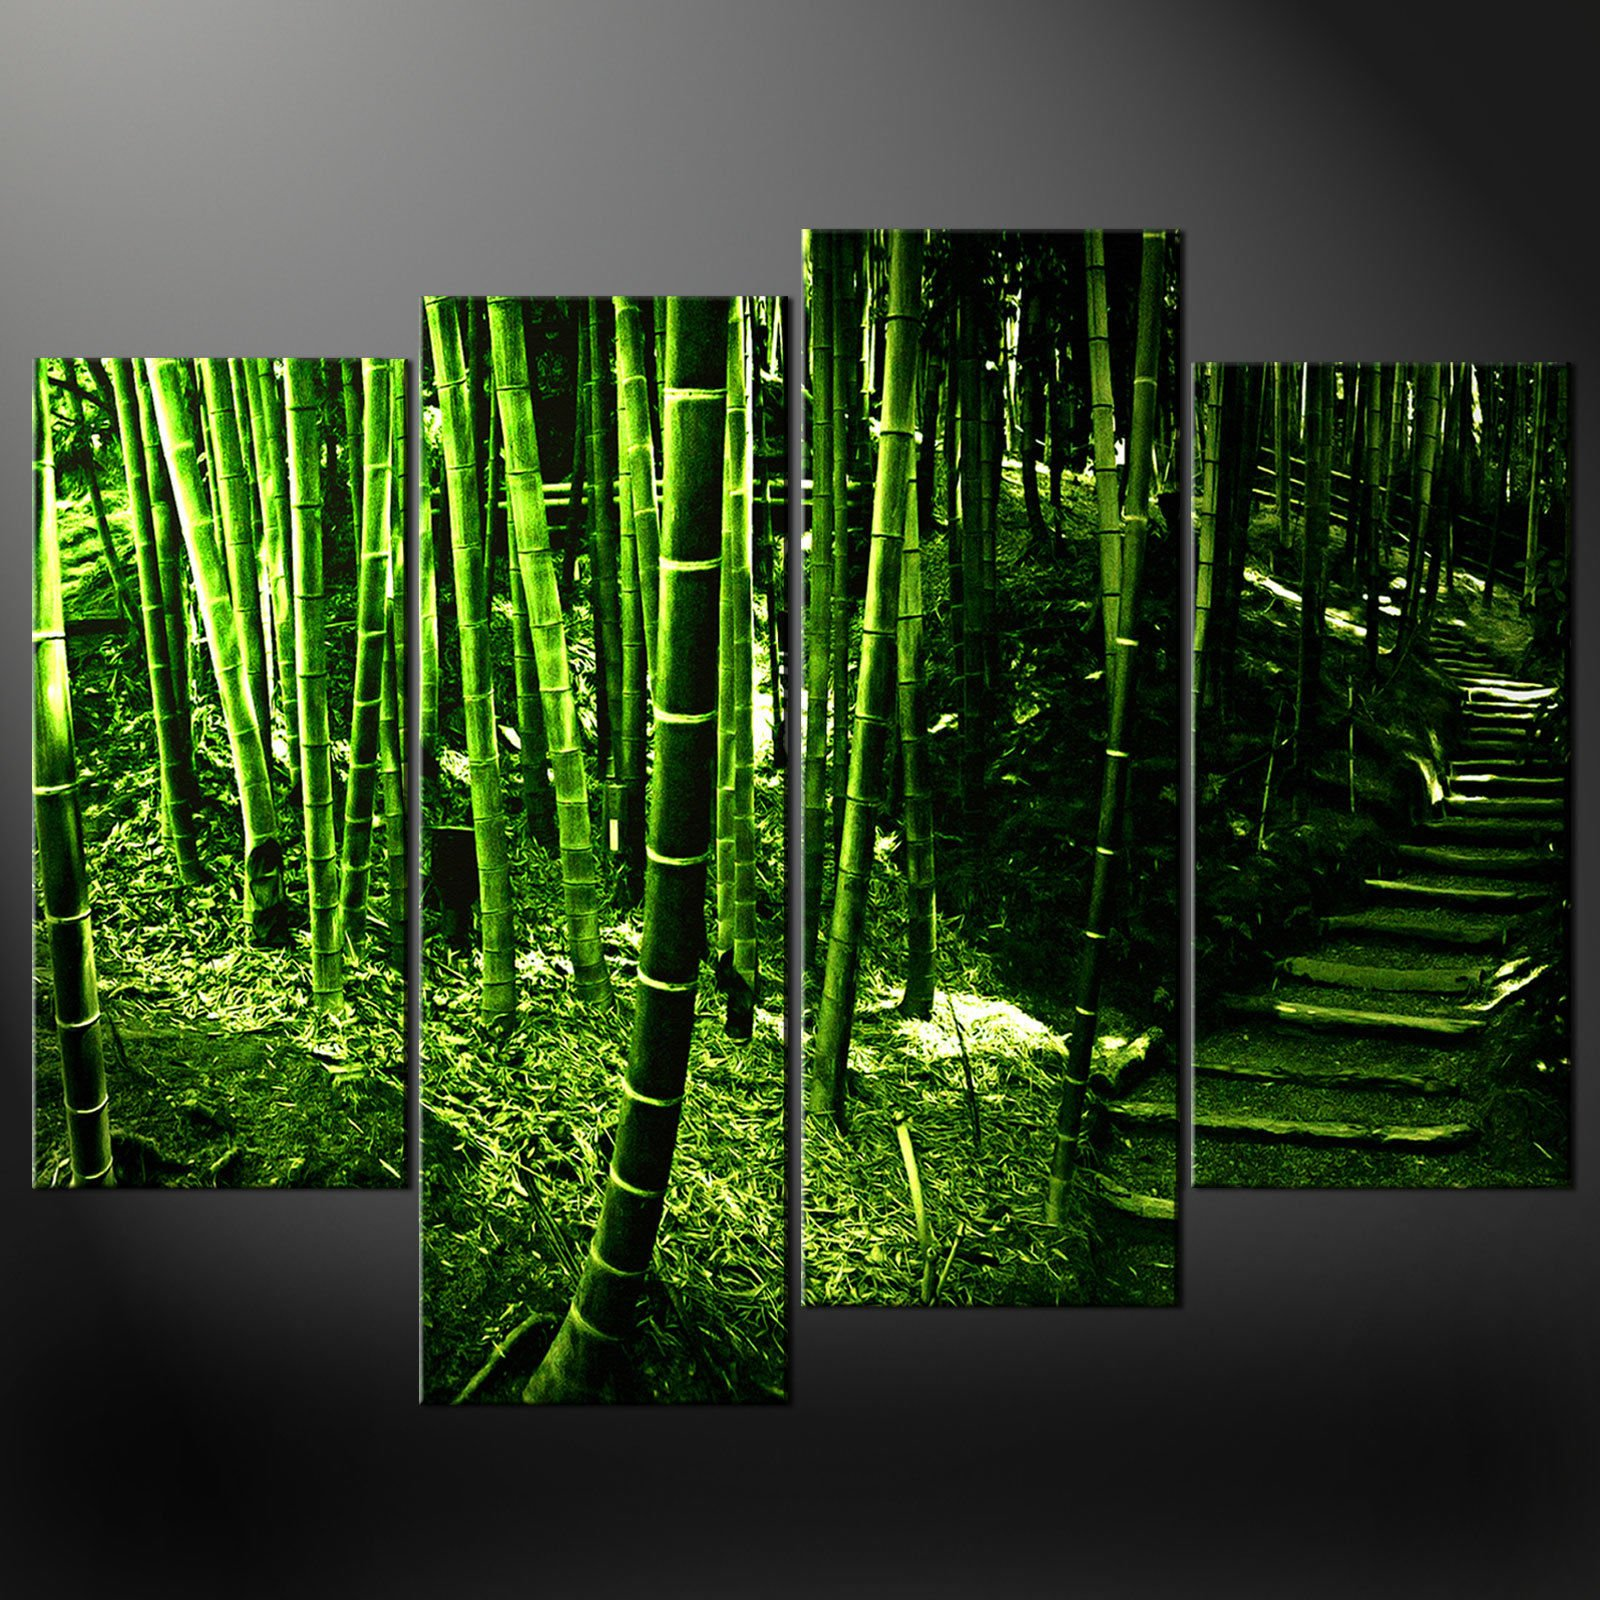 Wall Art Trees Green : Landscape archives page of canvas print art